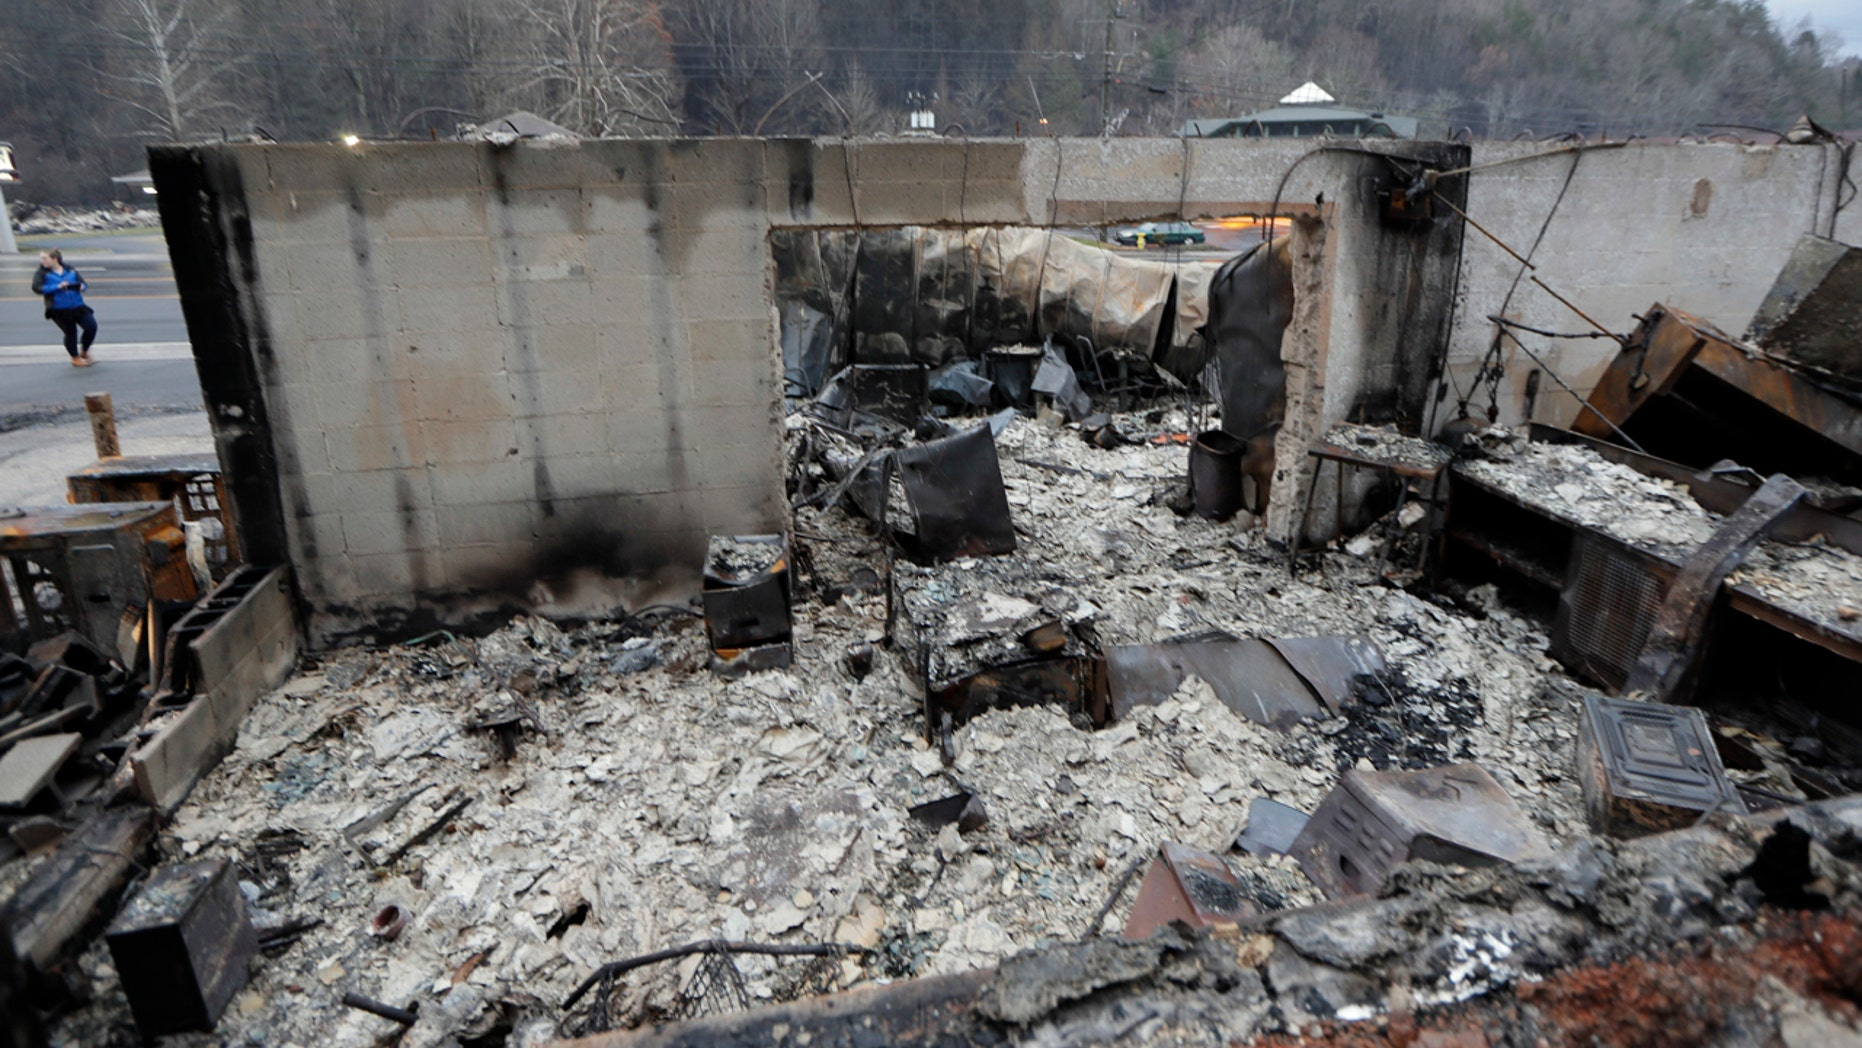 Some walls of a burned-out business remain Wednesday, Nov. 30, 2016, in Gatlinburg, Tenn., after a wildfire swept through the area Monday.